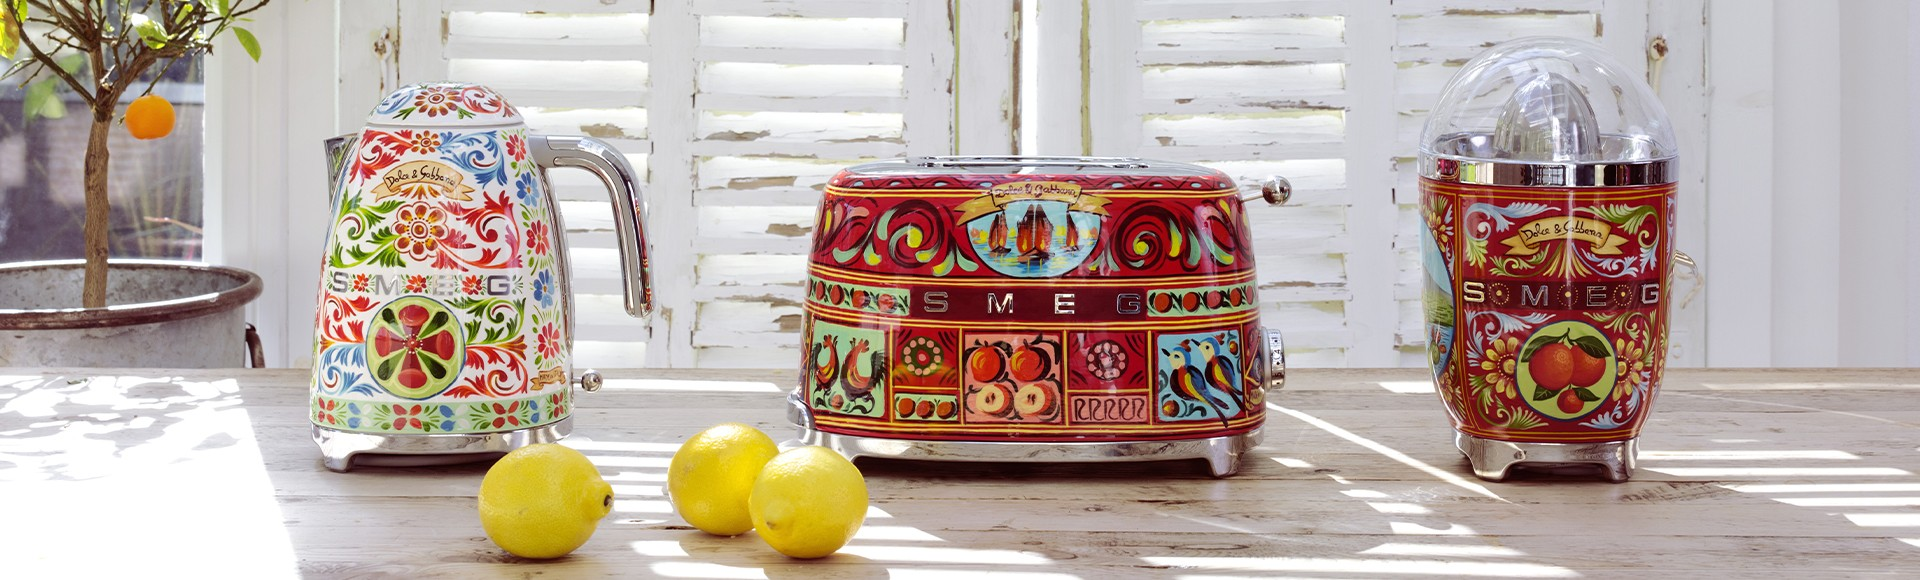 Sicily Is My Love, la collaboration entre SMEG et D&G arrive au Maroc!